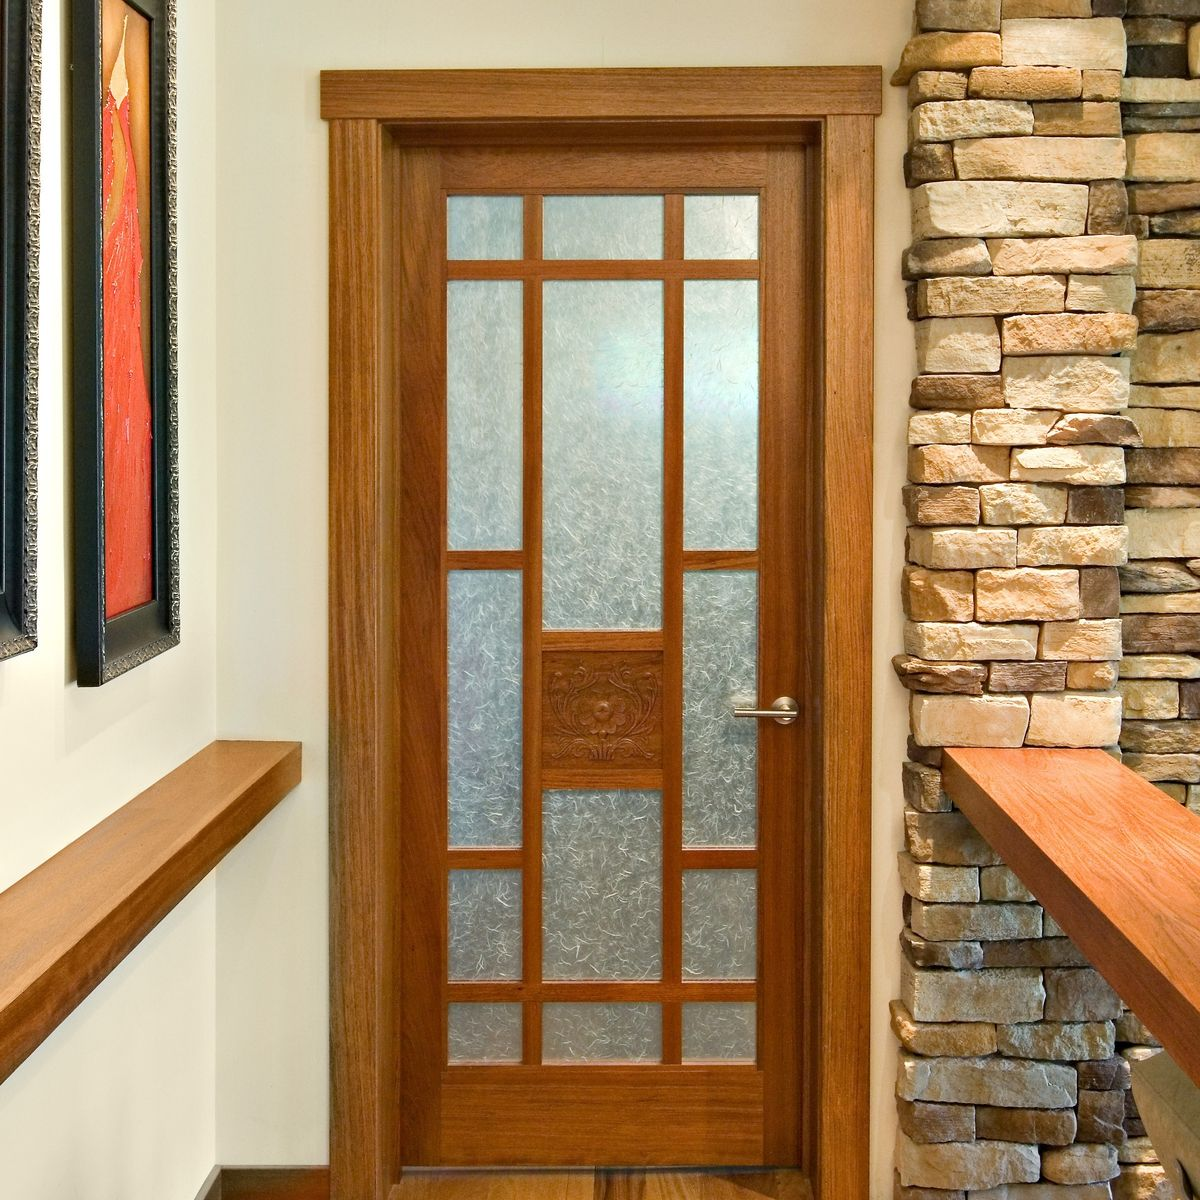 Handmade custom architectural interior doors by pegg for Unique interior door ideas